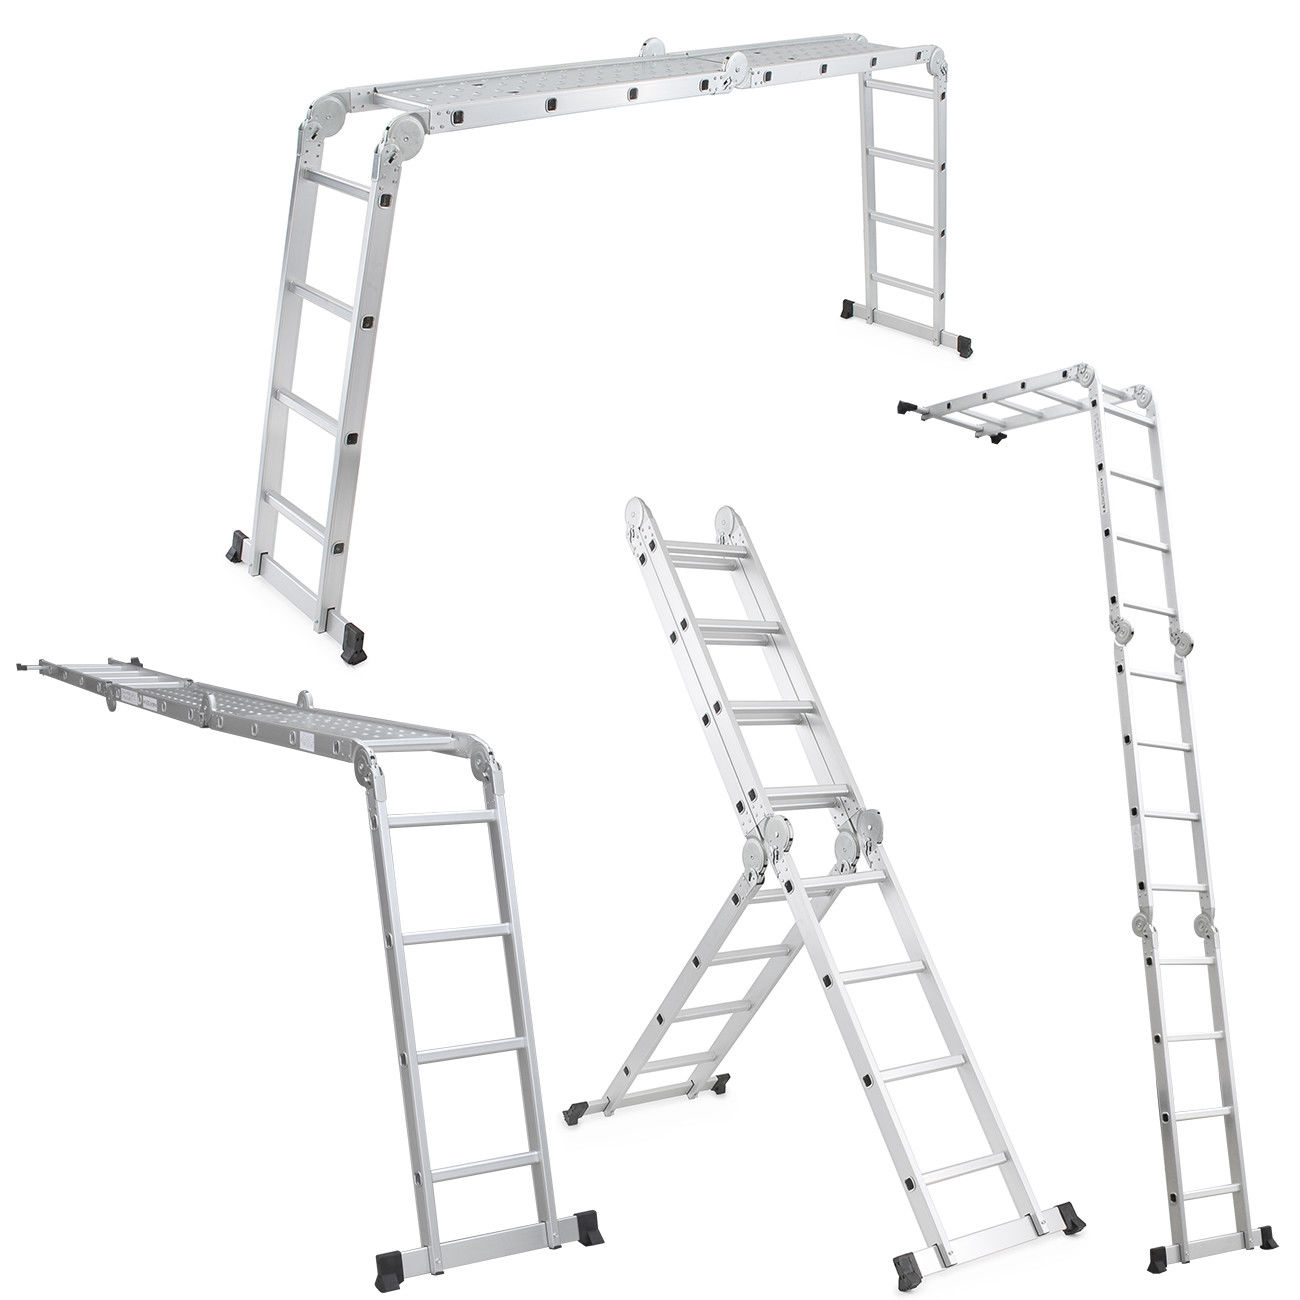 15 5 Ft Multi Purpose Aluminum Folding Step Platform